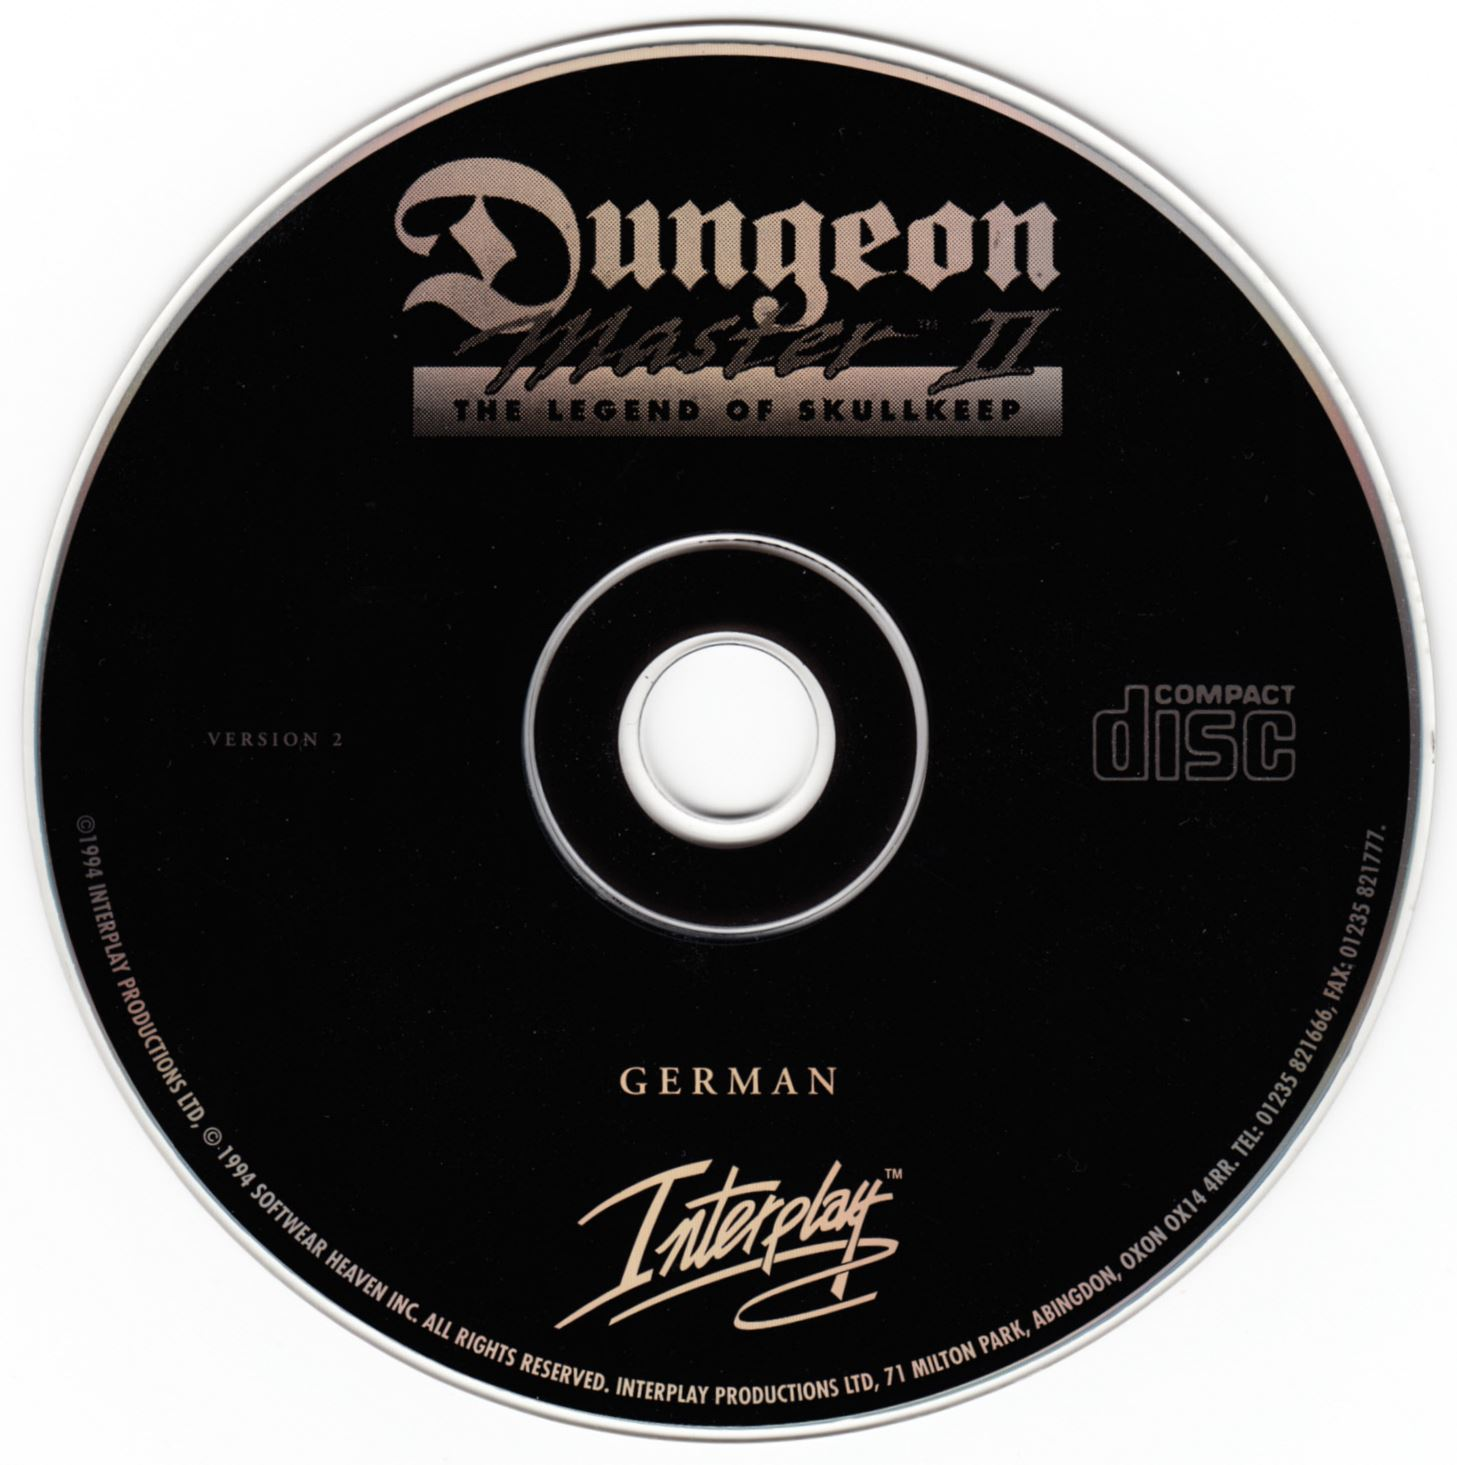 Game - Dungeon Master II - DE - PC - Jewel Case - Compact Disc - Front - Scan